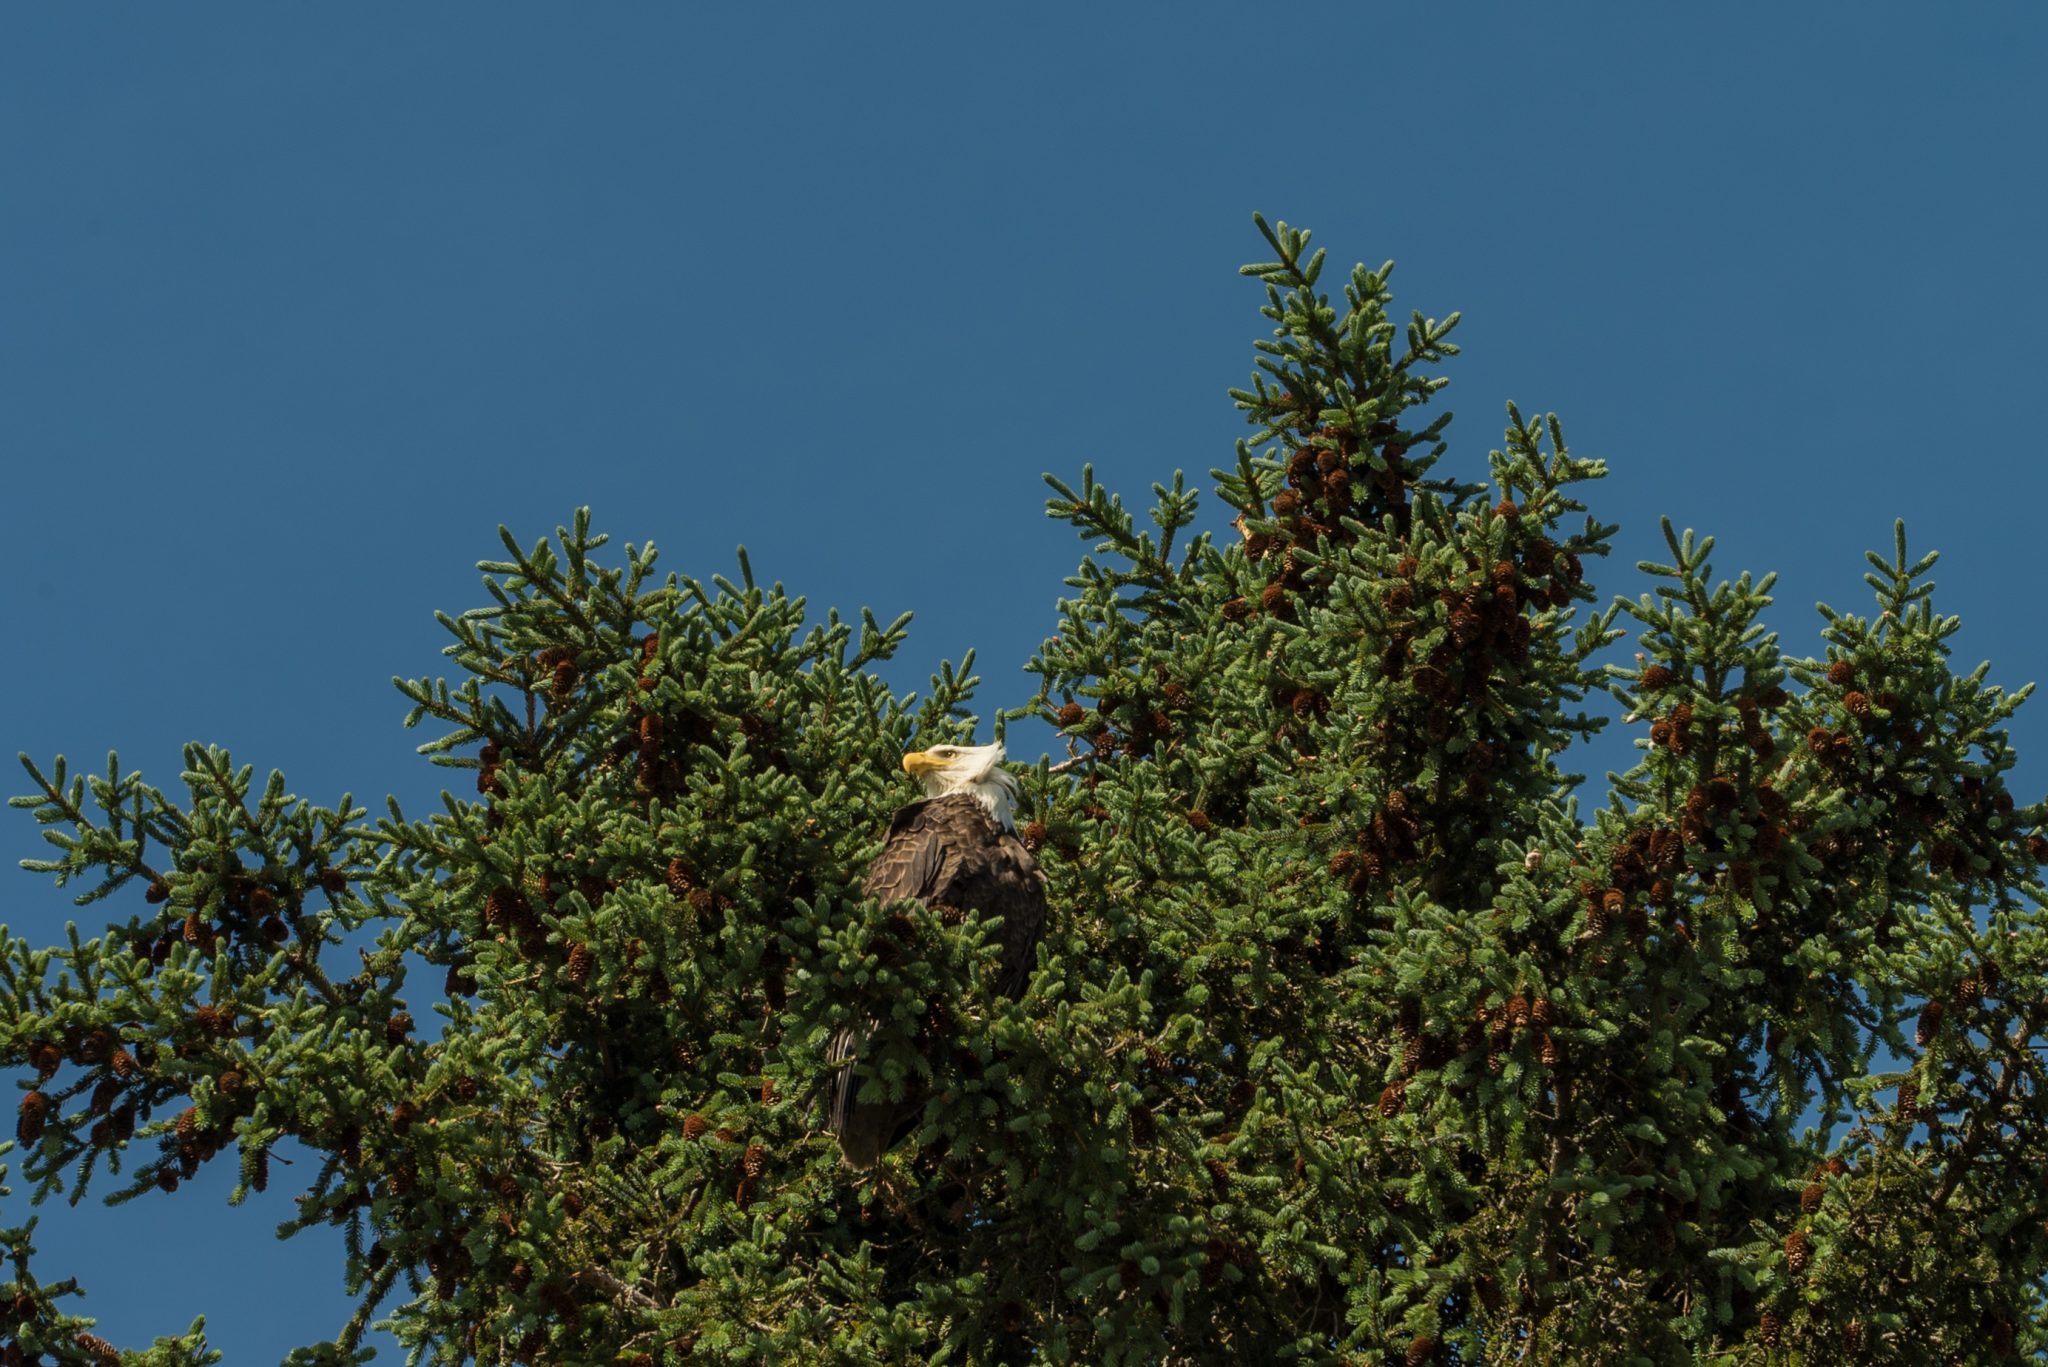 alaska-bald-eagle-snug-harbor-DSC06830